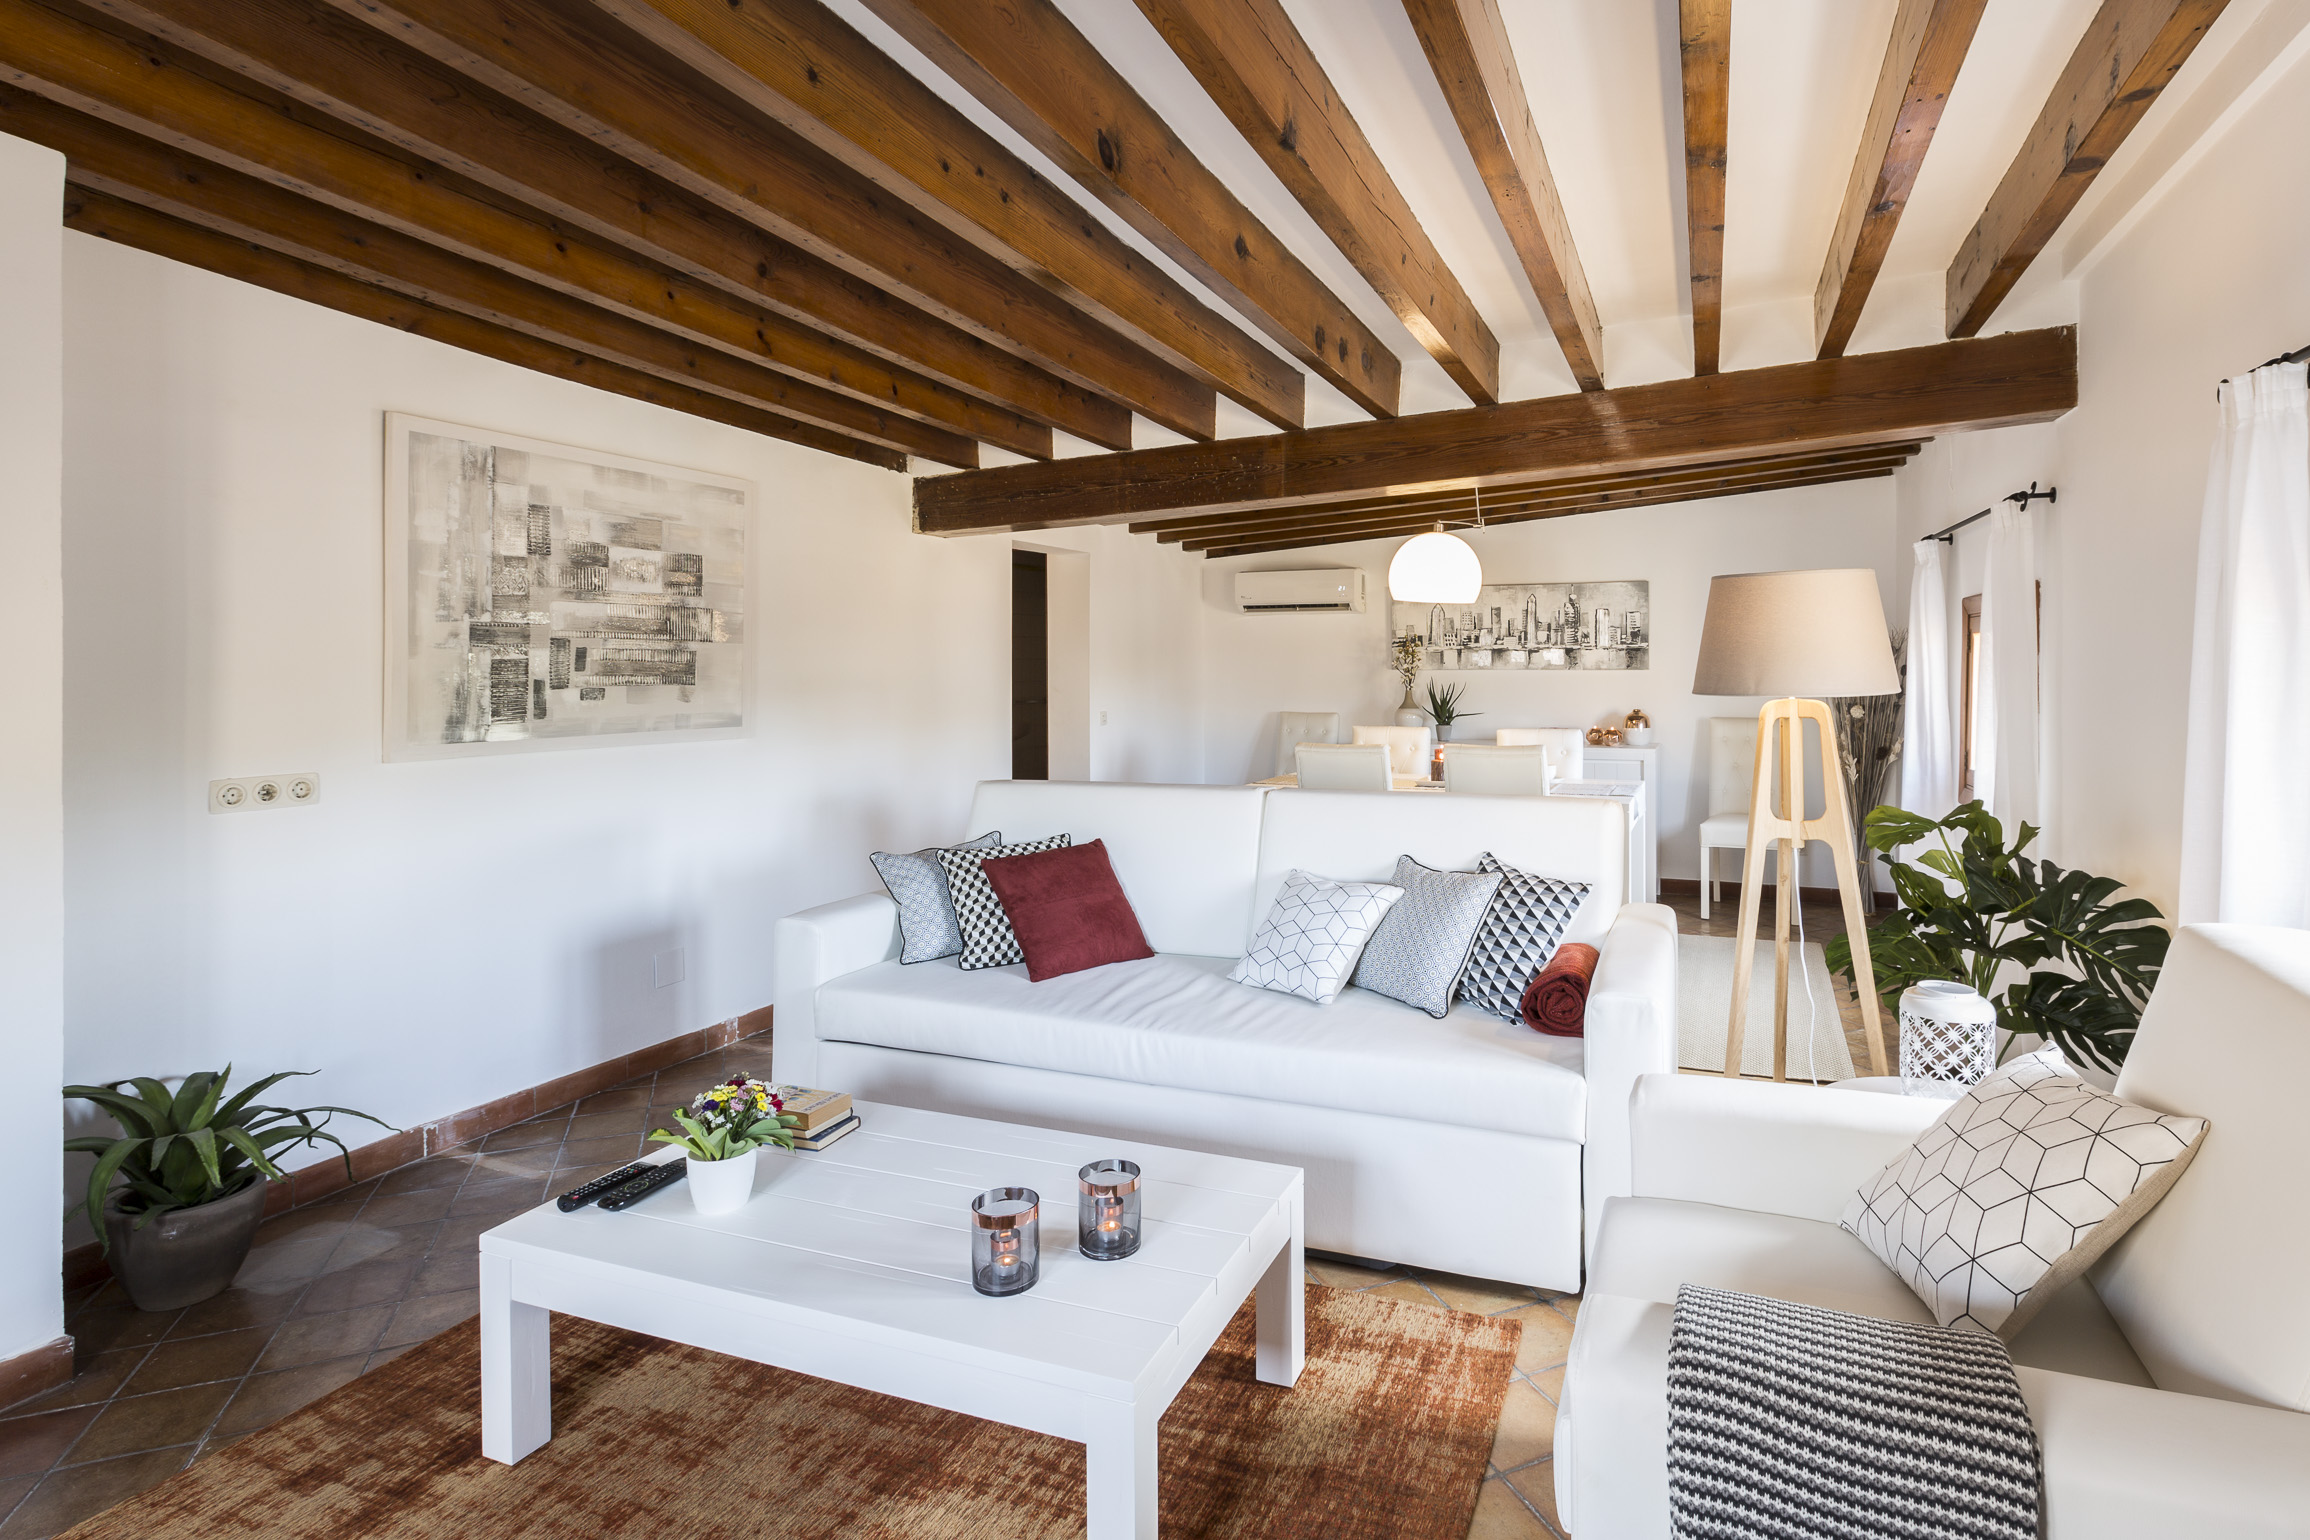 Charming 2 beds/2 baths in the heart of Palma @ Mallorca